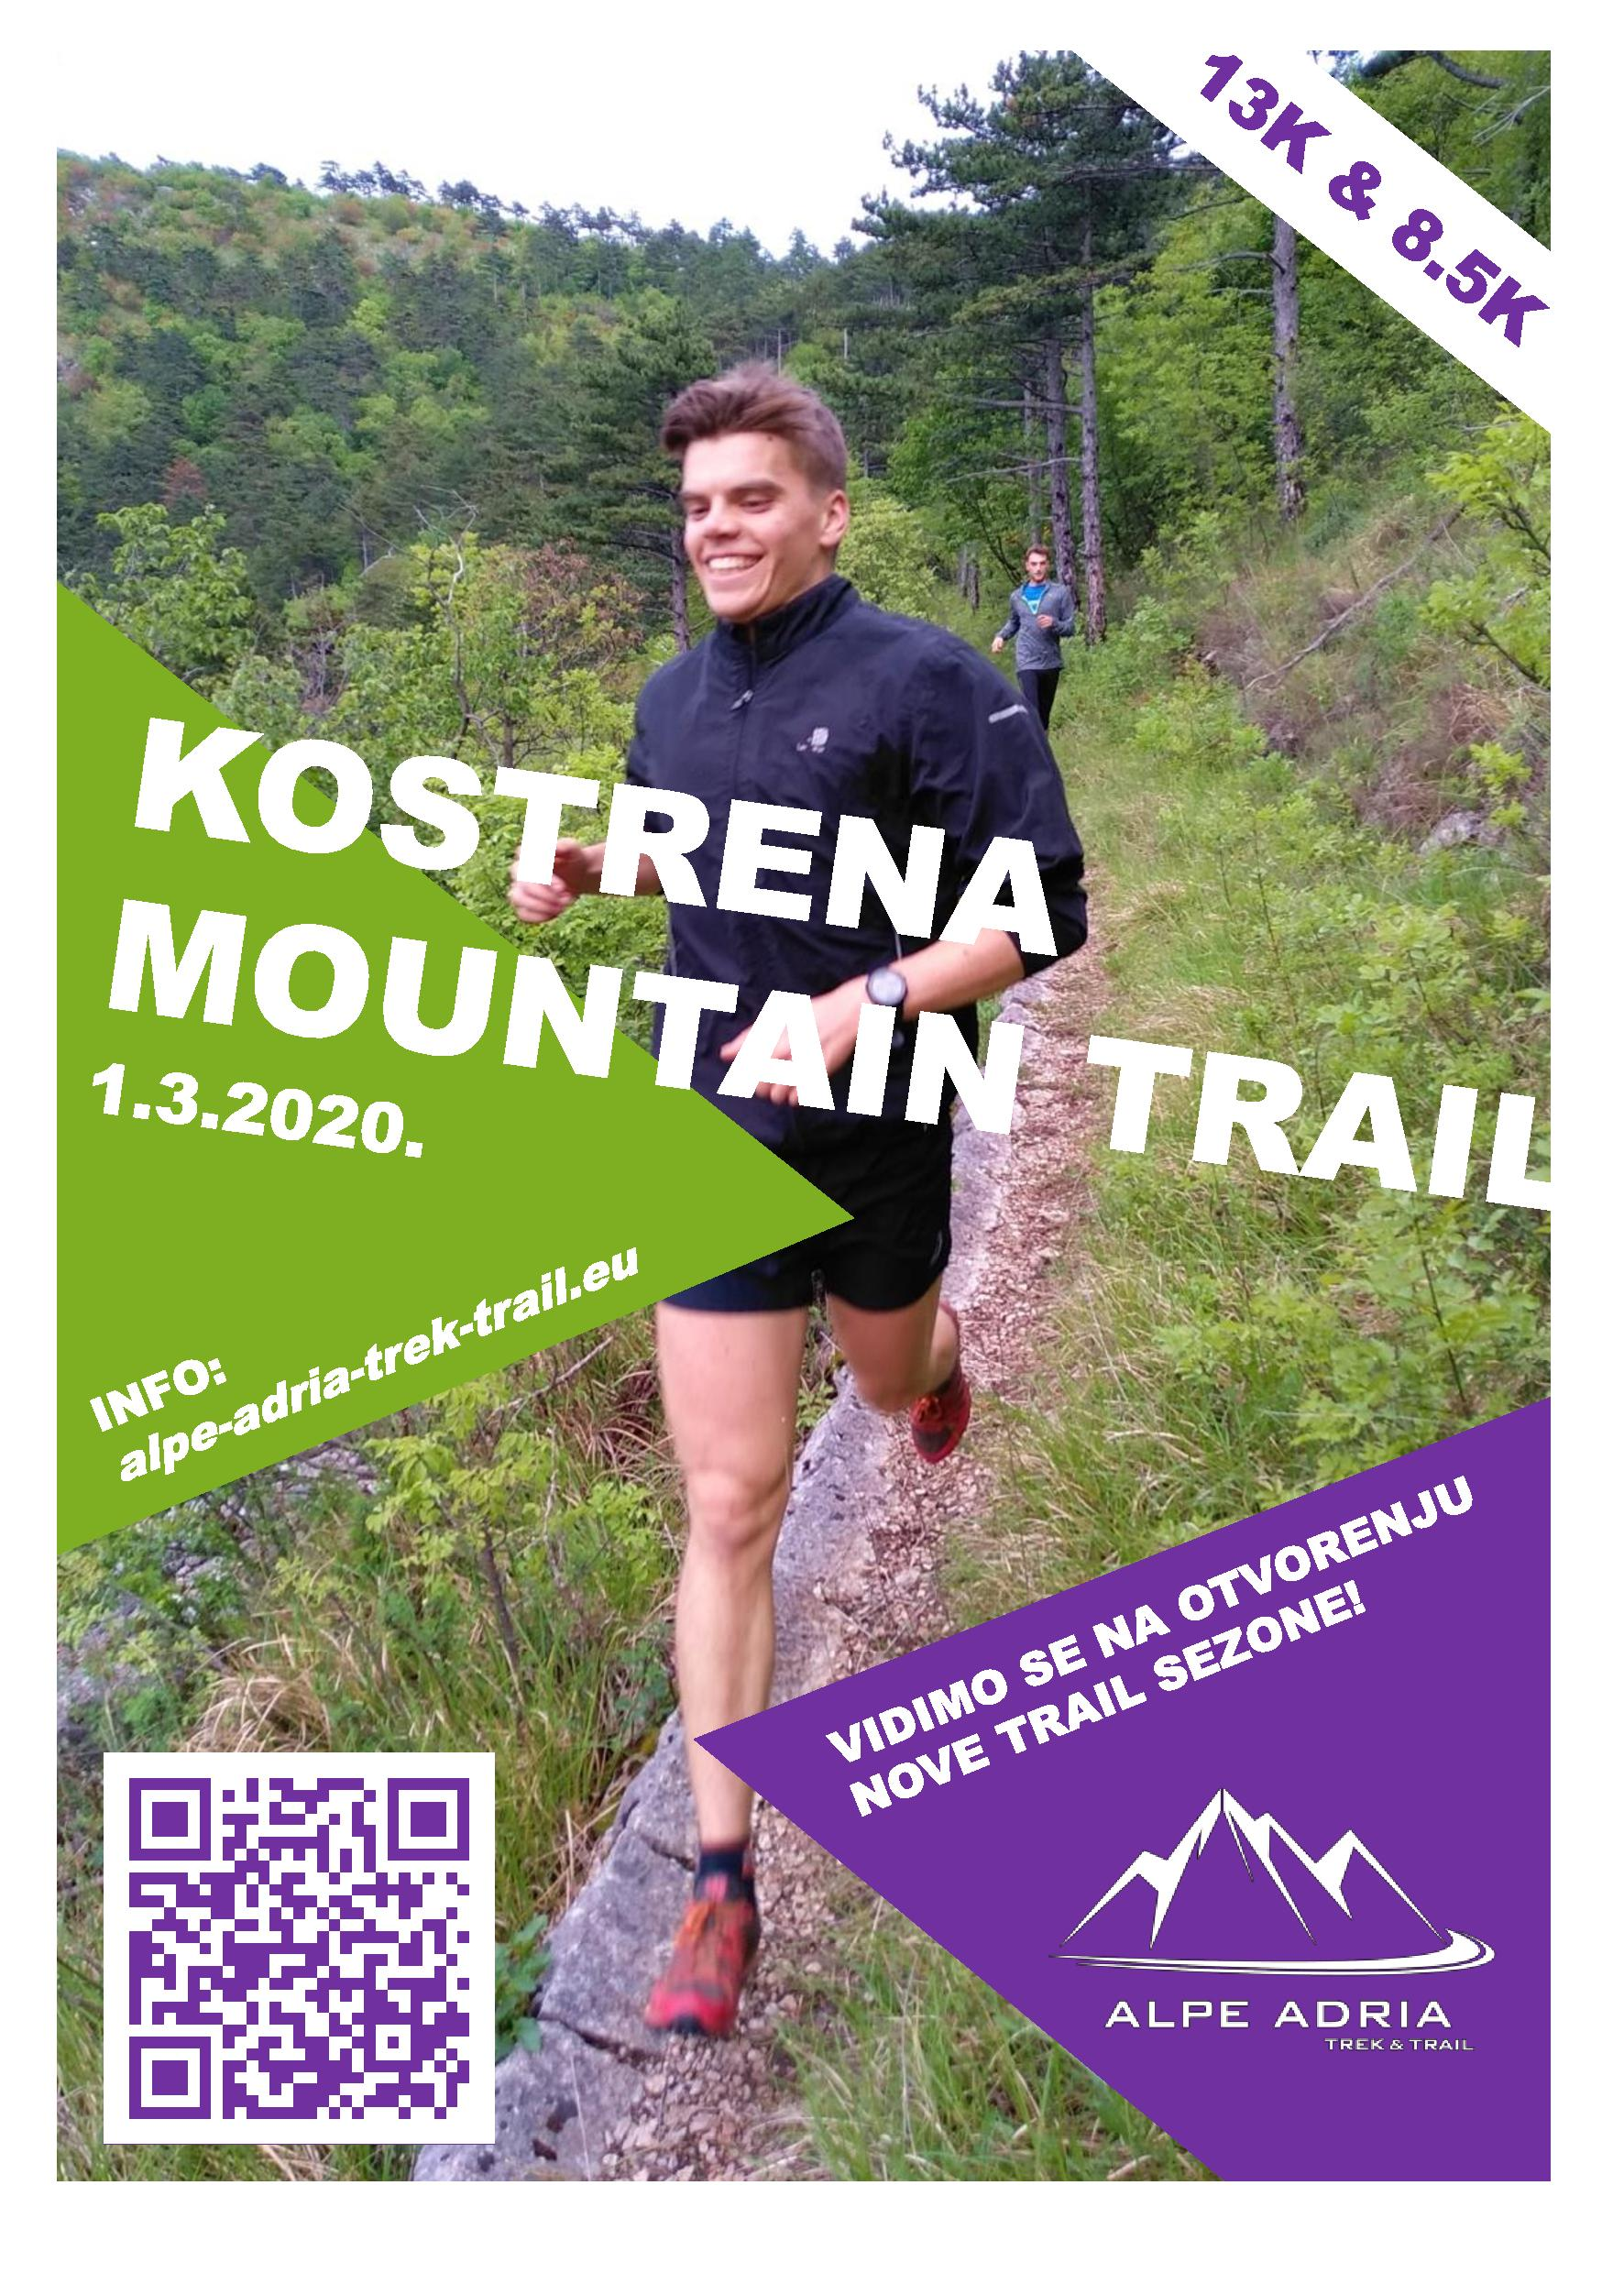 1. Kostrena Mountain Trail